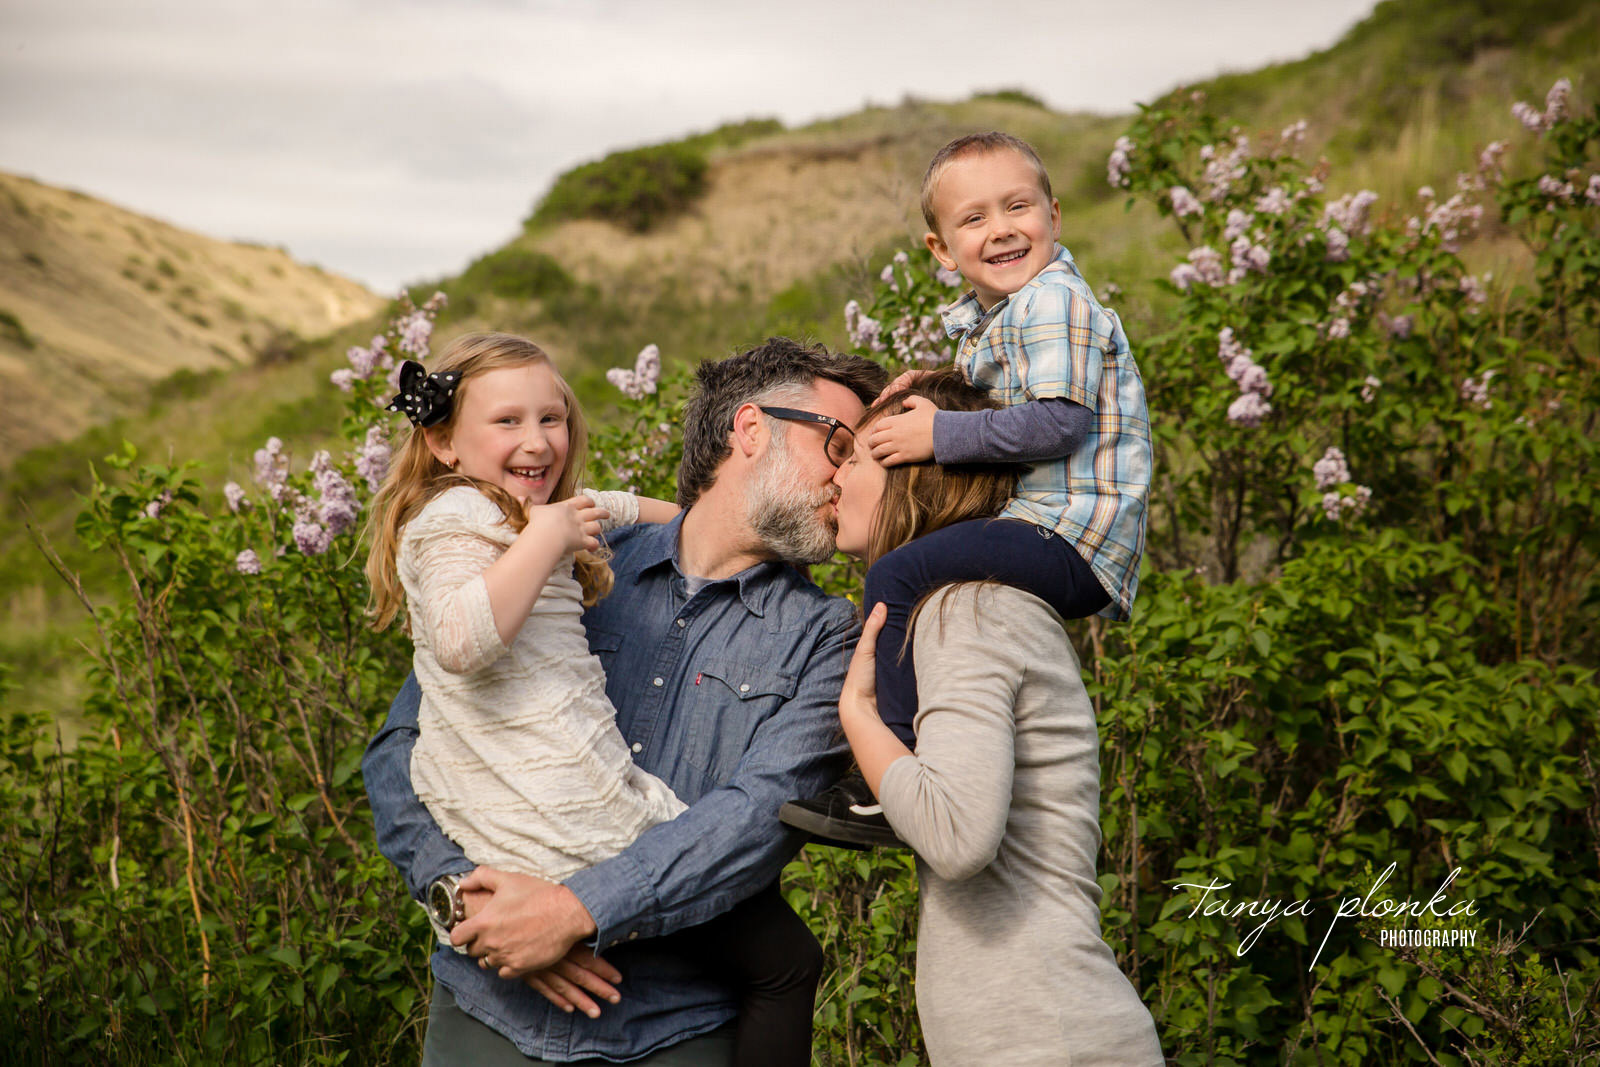 Mom and Dad kiss in front of lilacs while their children giggle